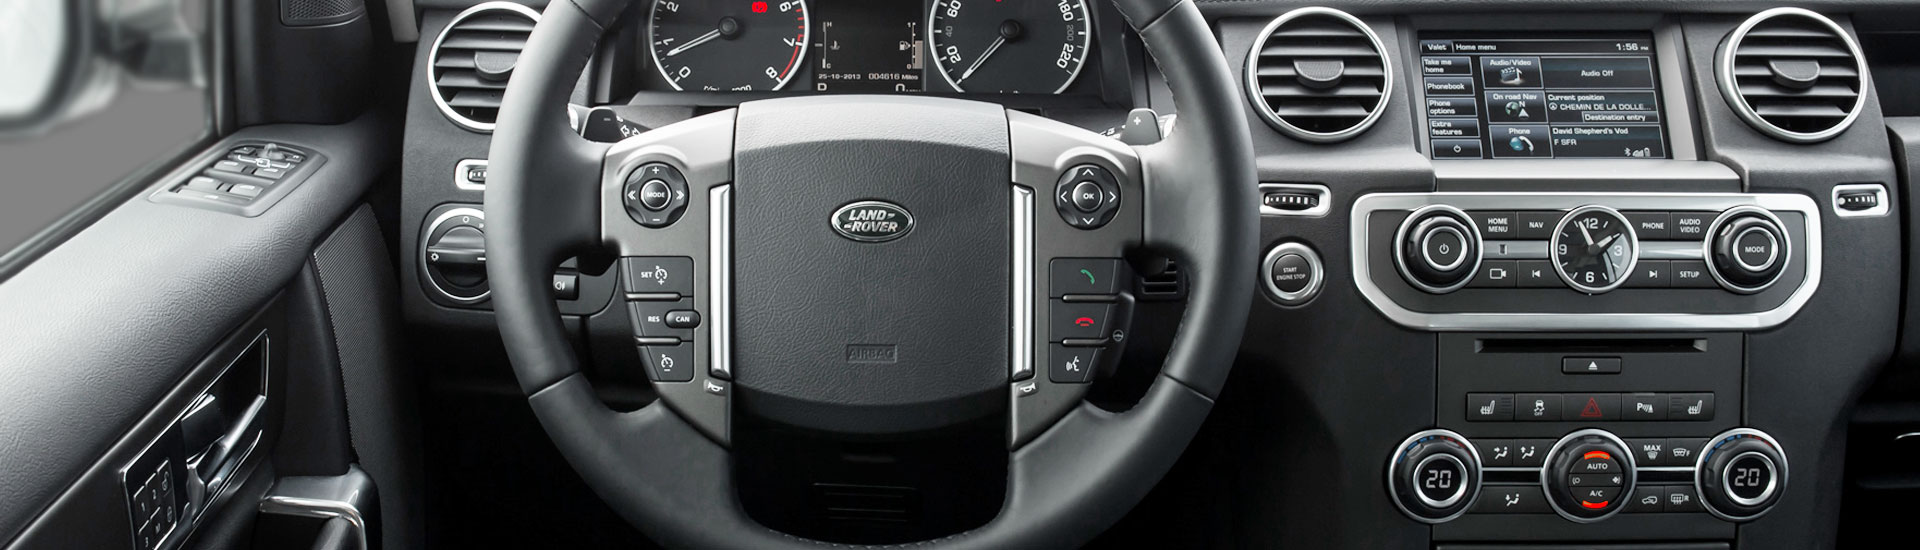 Land Rover Discovery Custom Dash Kits